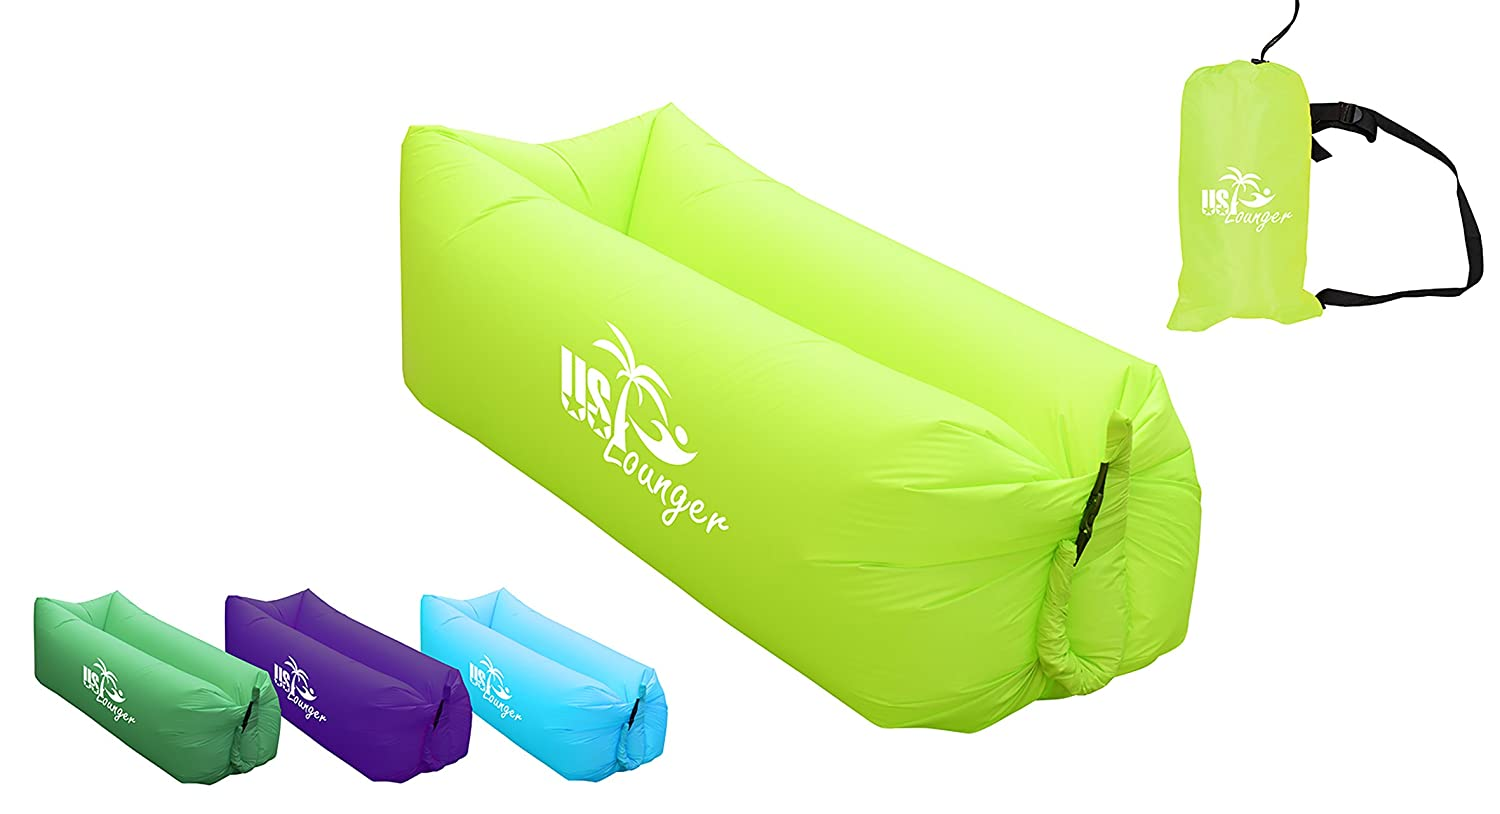 Beach US Lounger Fast Inflatable Portable Outdoor or Indoor Wind Bed Lounger Backyard Air Sleeping Sofa Couch Air Bag Sofa Lazy Bed for Camping Park